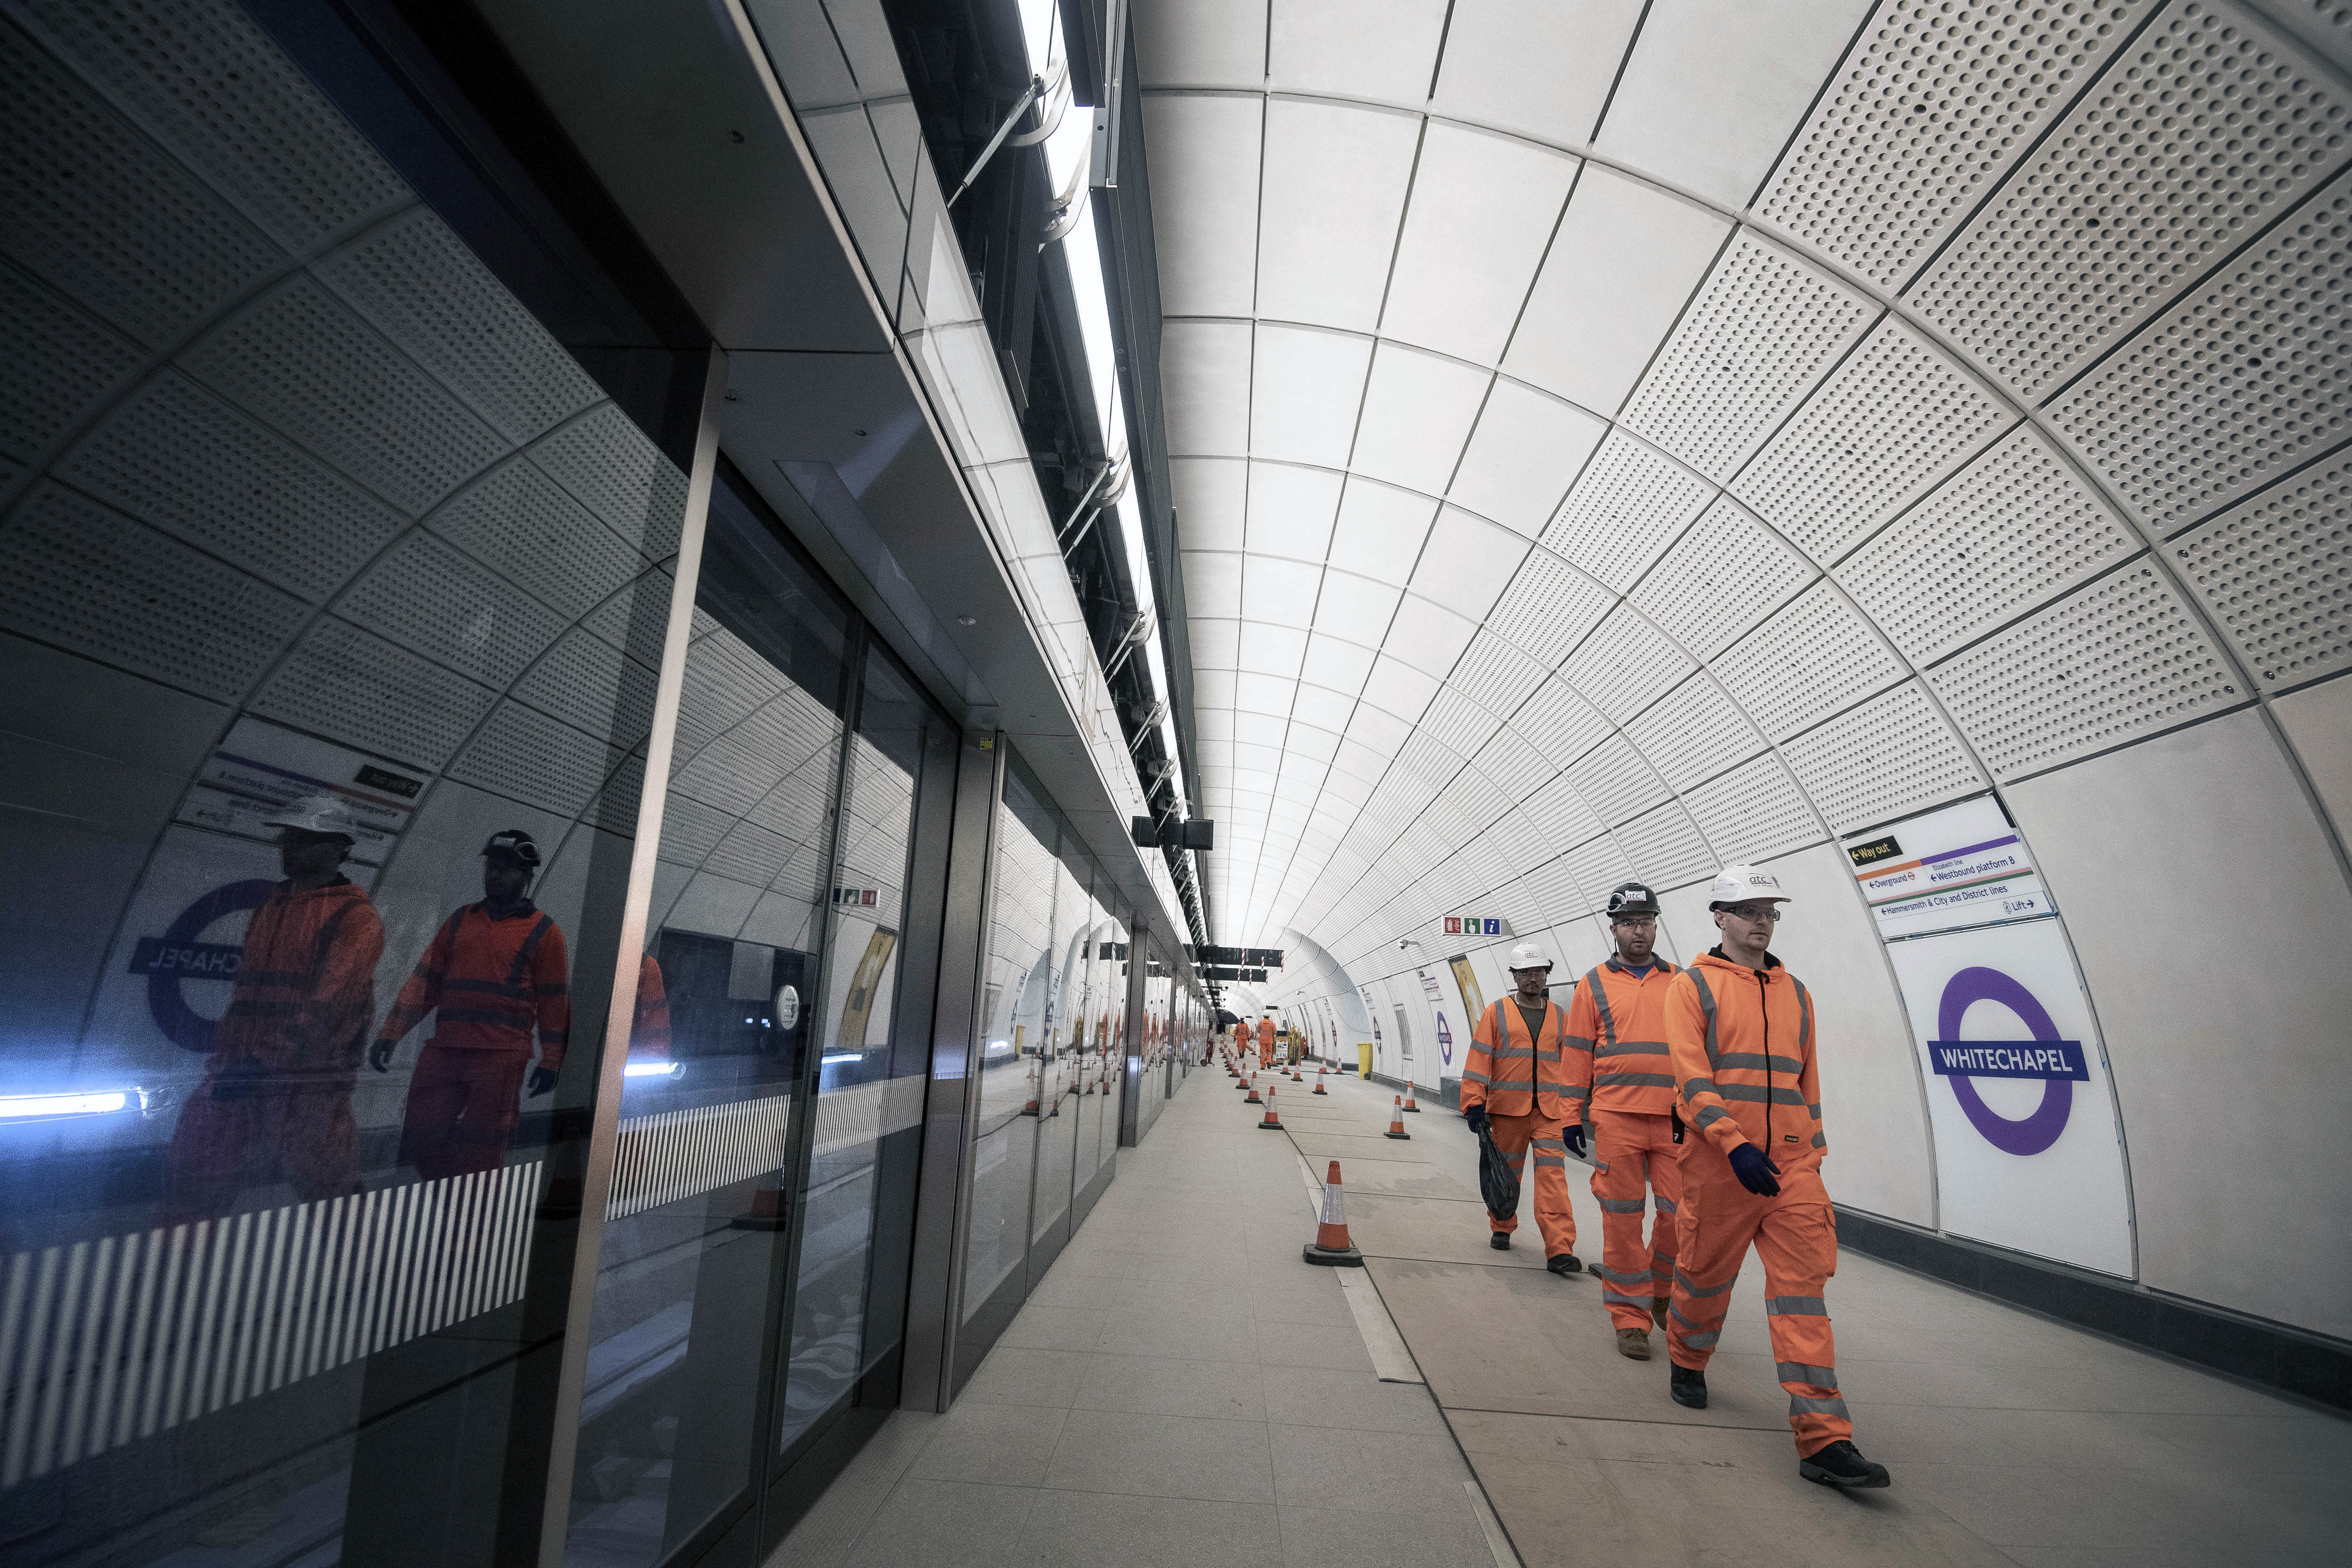 Crossrail delayed again as costs soar for new London line